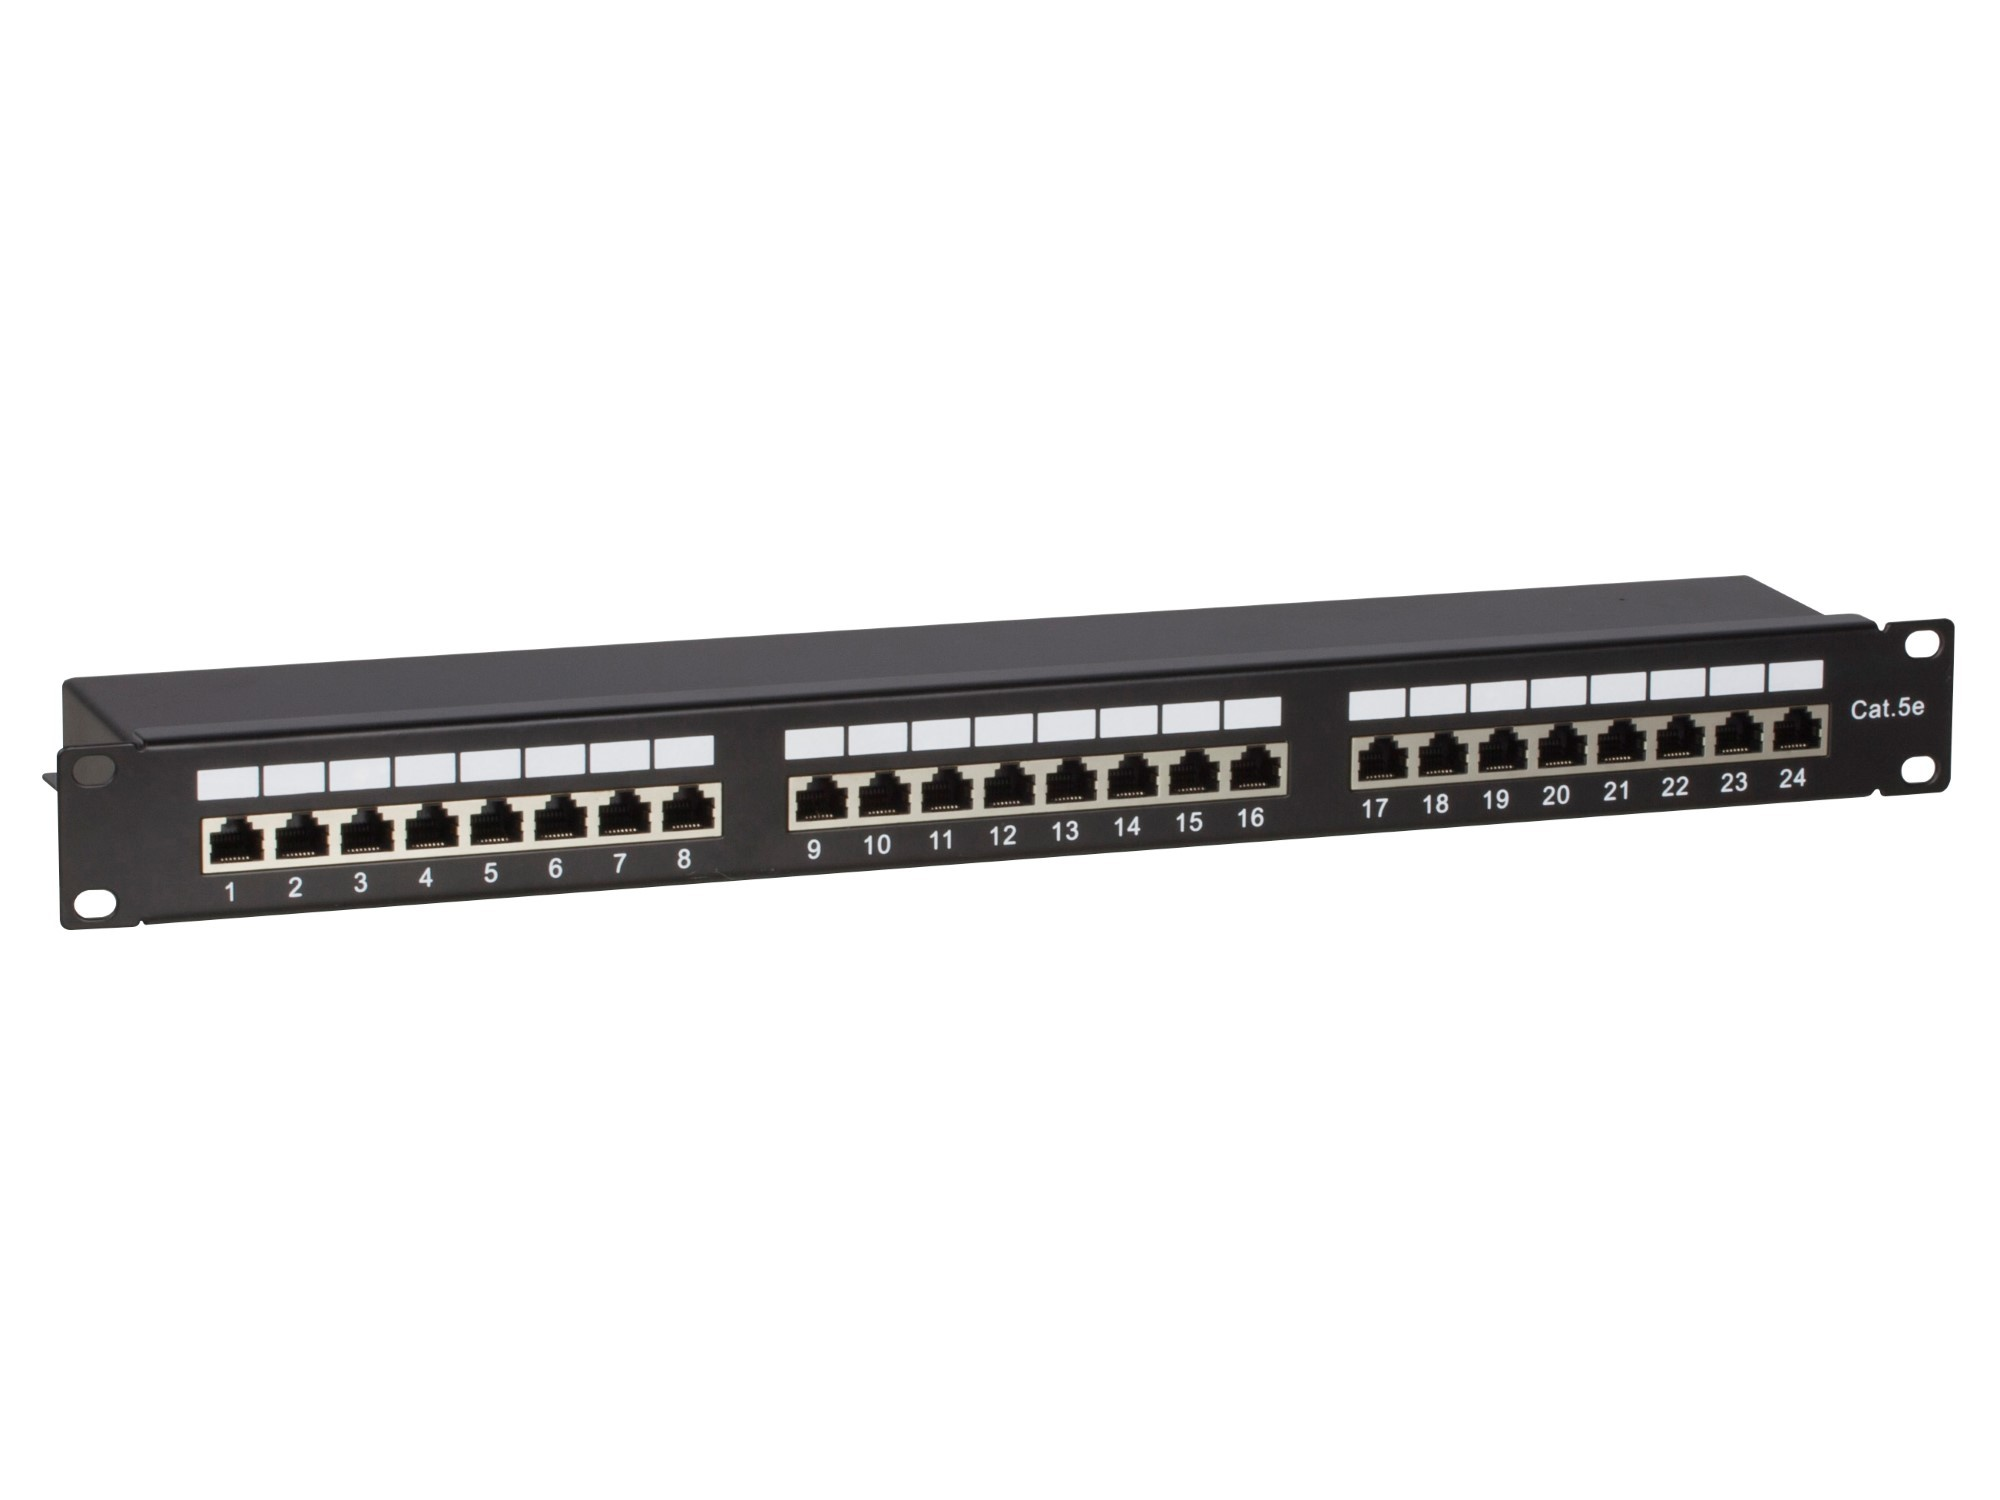 Afbeelding van CAT5e FTP patch panel - 24 ports